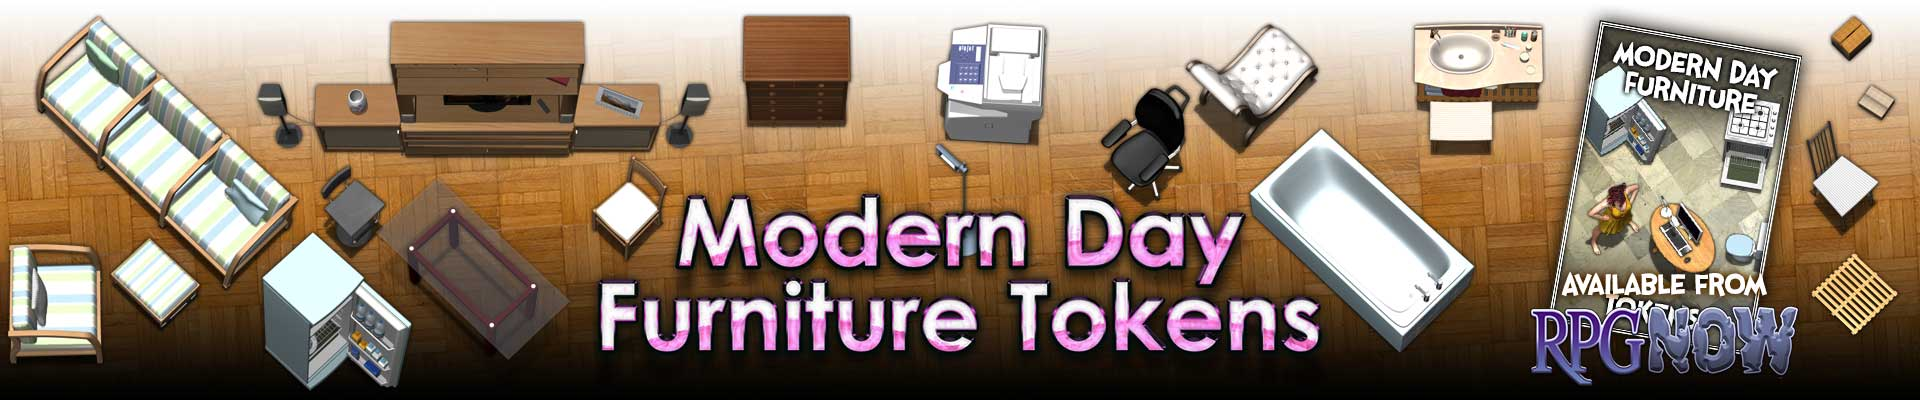 Modern Day Furniture Tokens